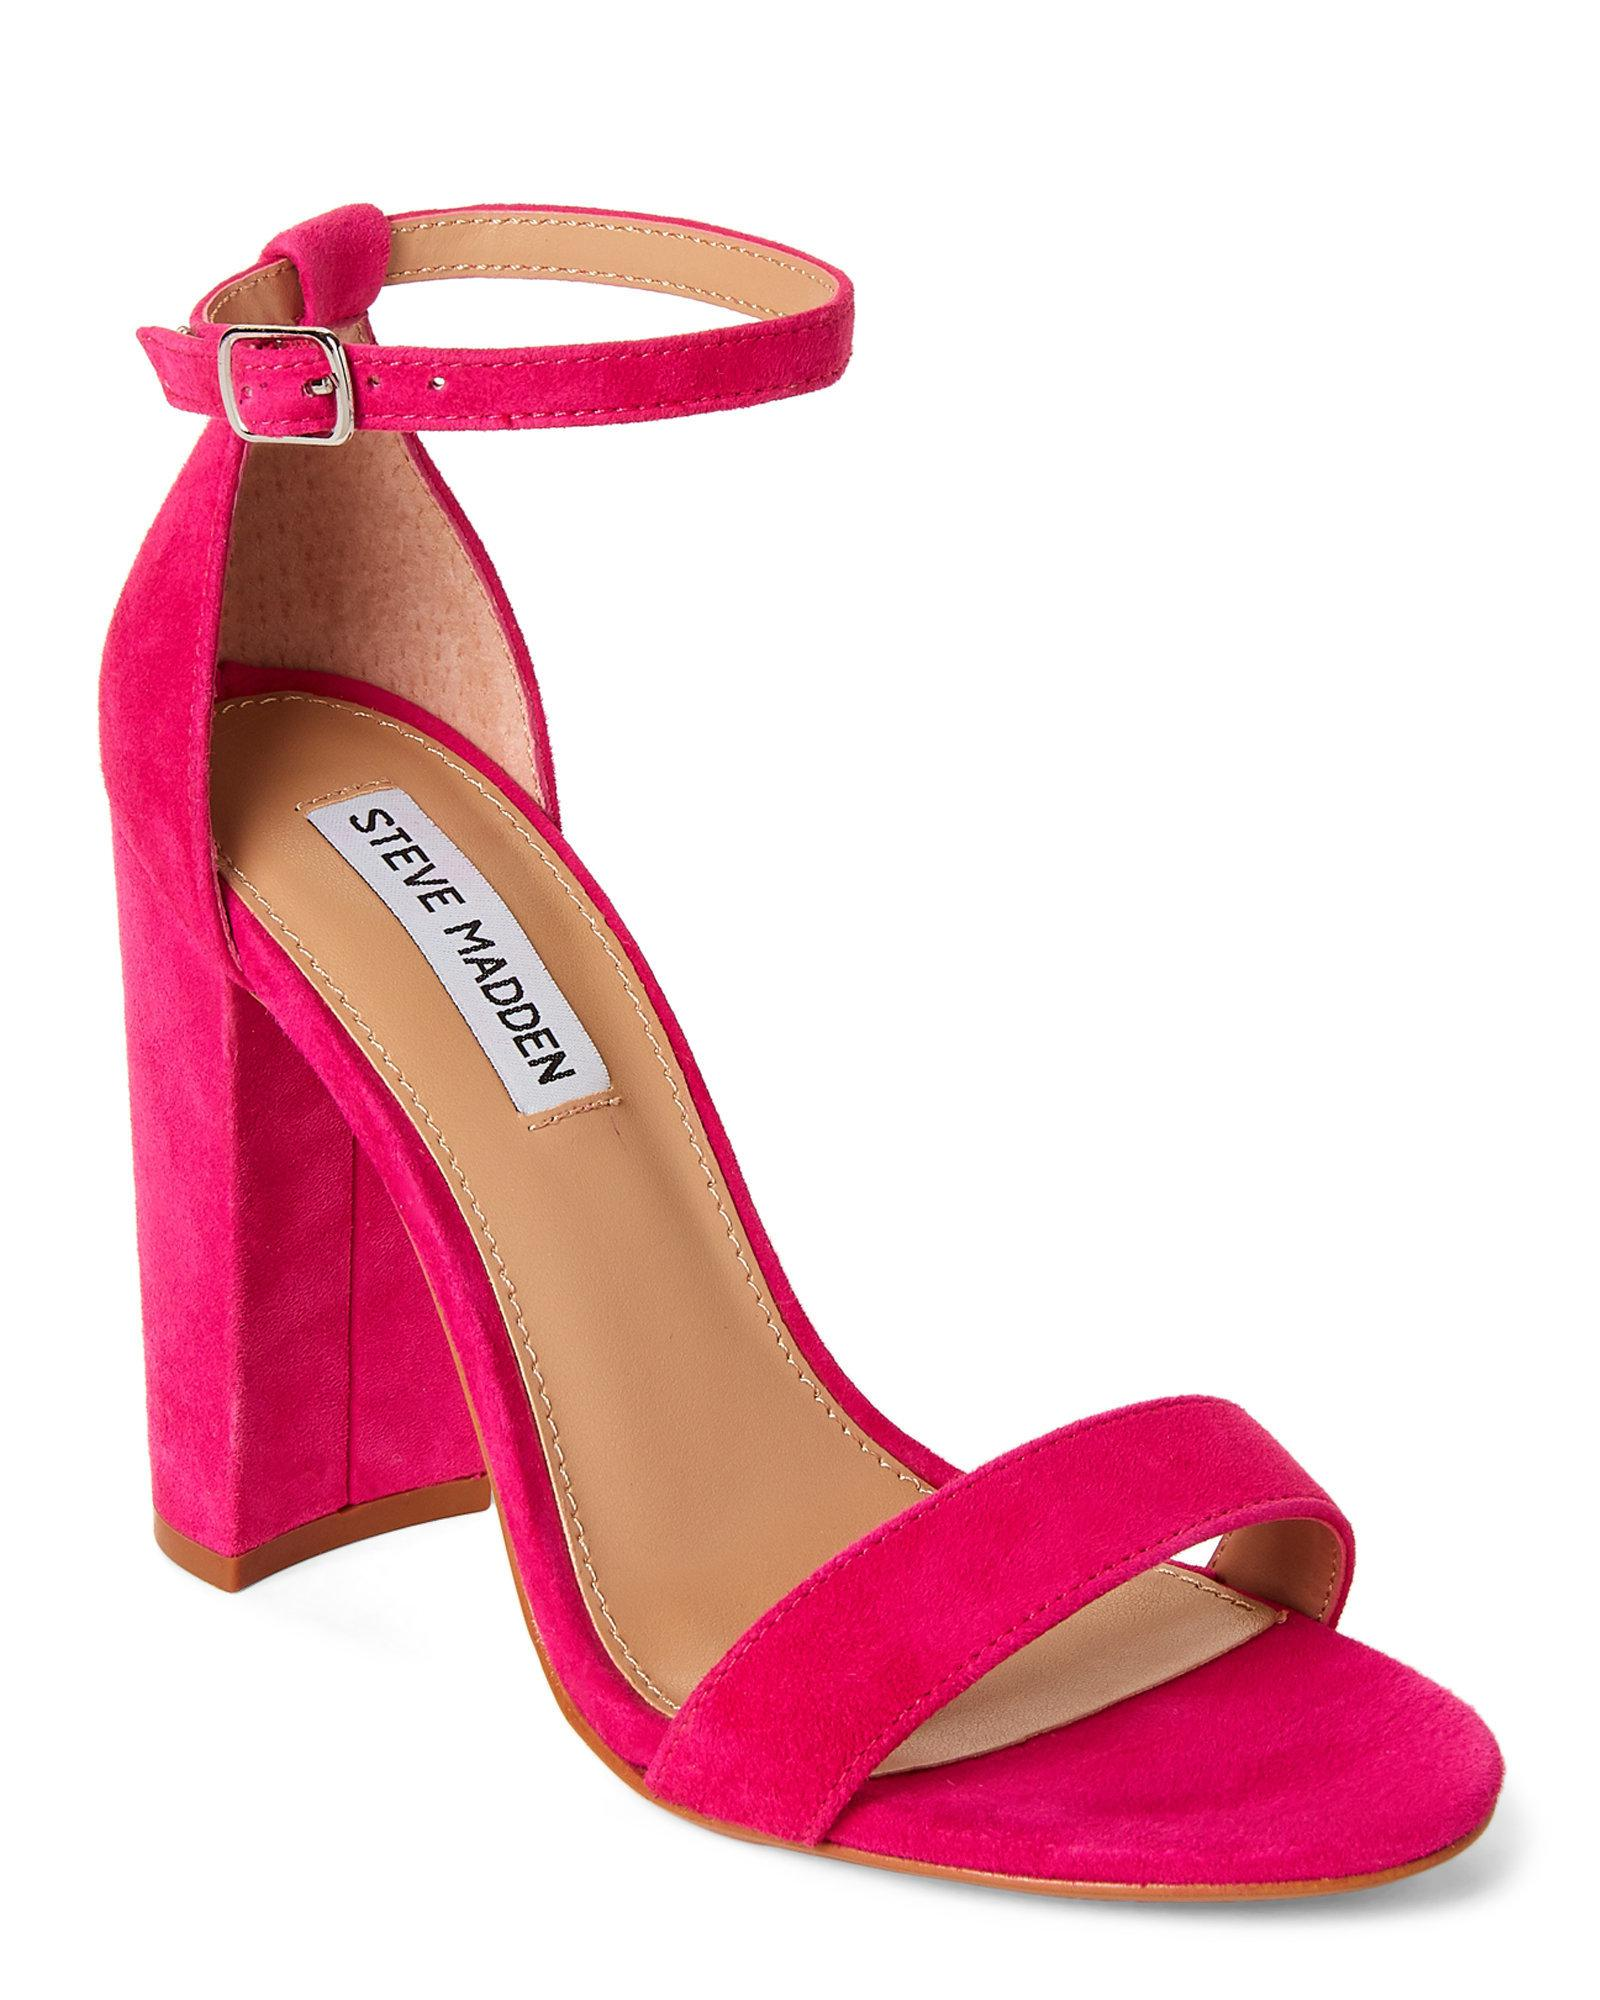 4a67d2dec4f Lyst - Steve Madden Hot Pink Carrson Ankle Strap Suede Sandals in Pink